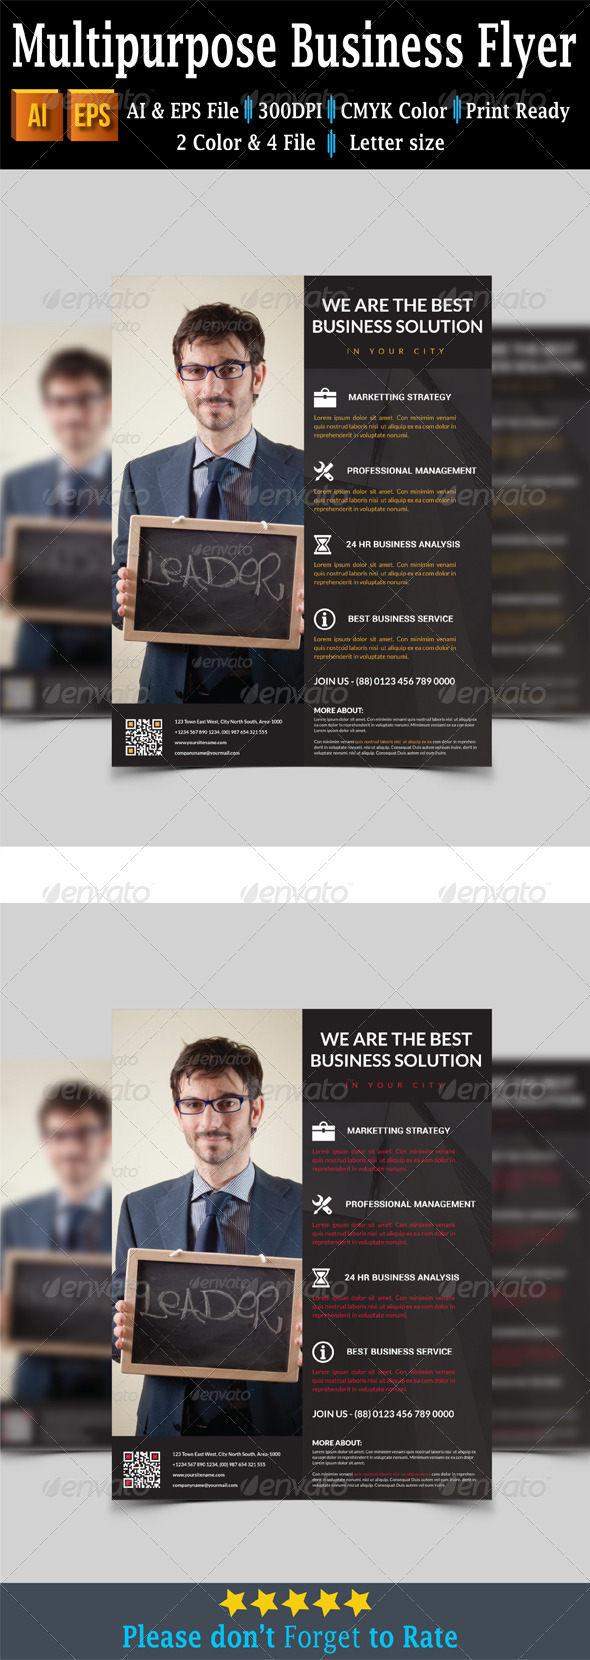 GraphicRiver Multipurpose Business Flyer 7739986